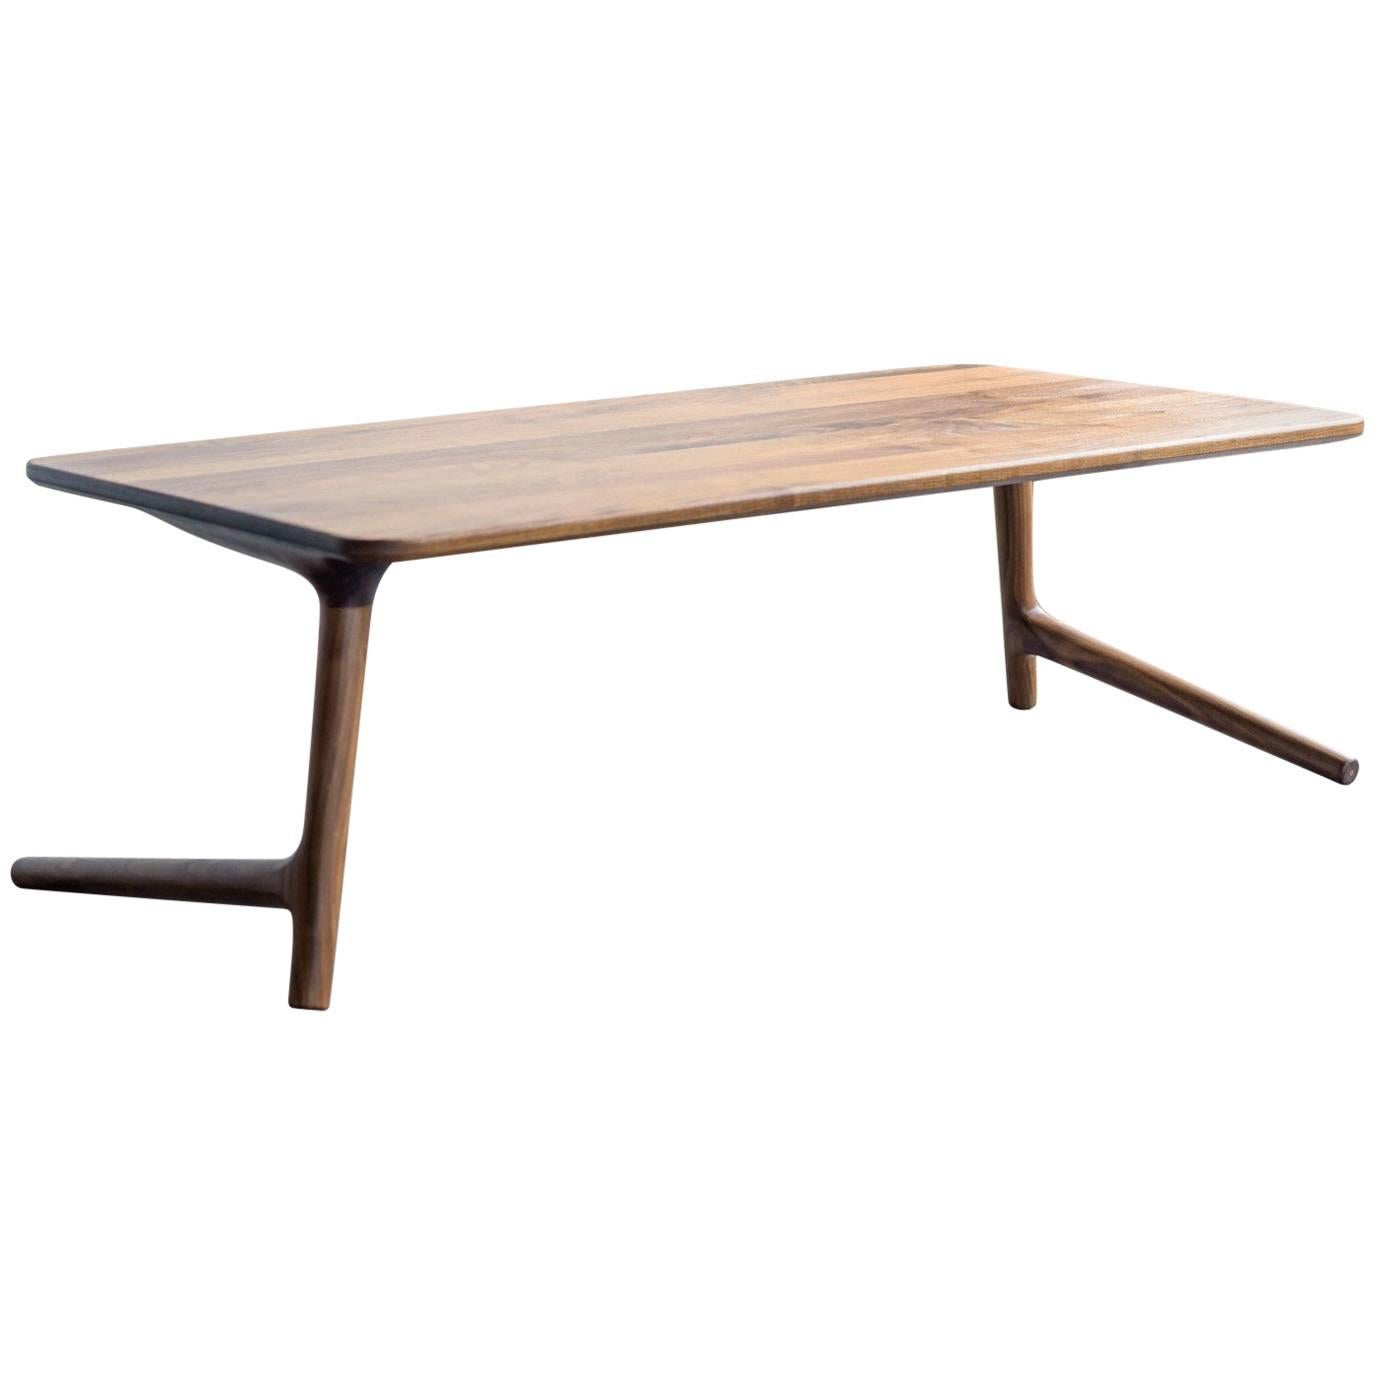 Minimal Coffee Table made from Walnut Wood, by Fernweh Woodworking